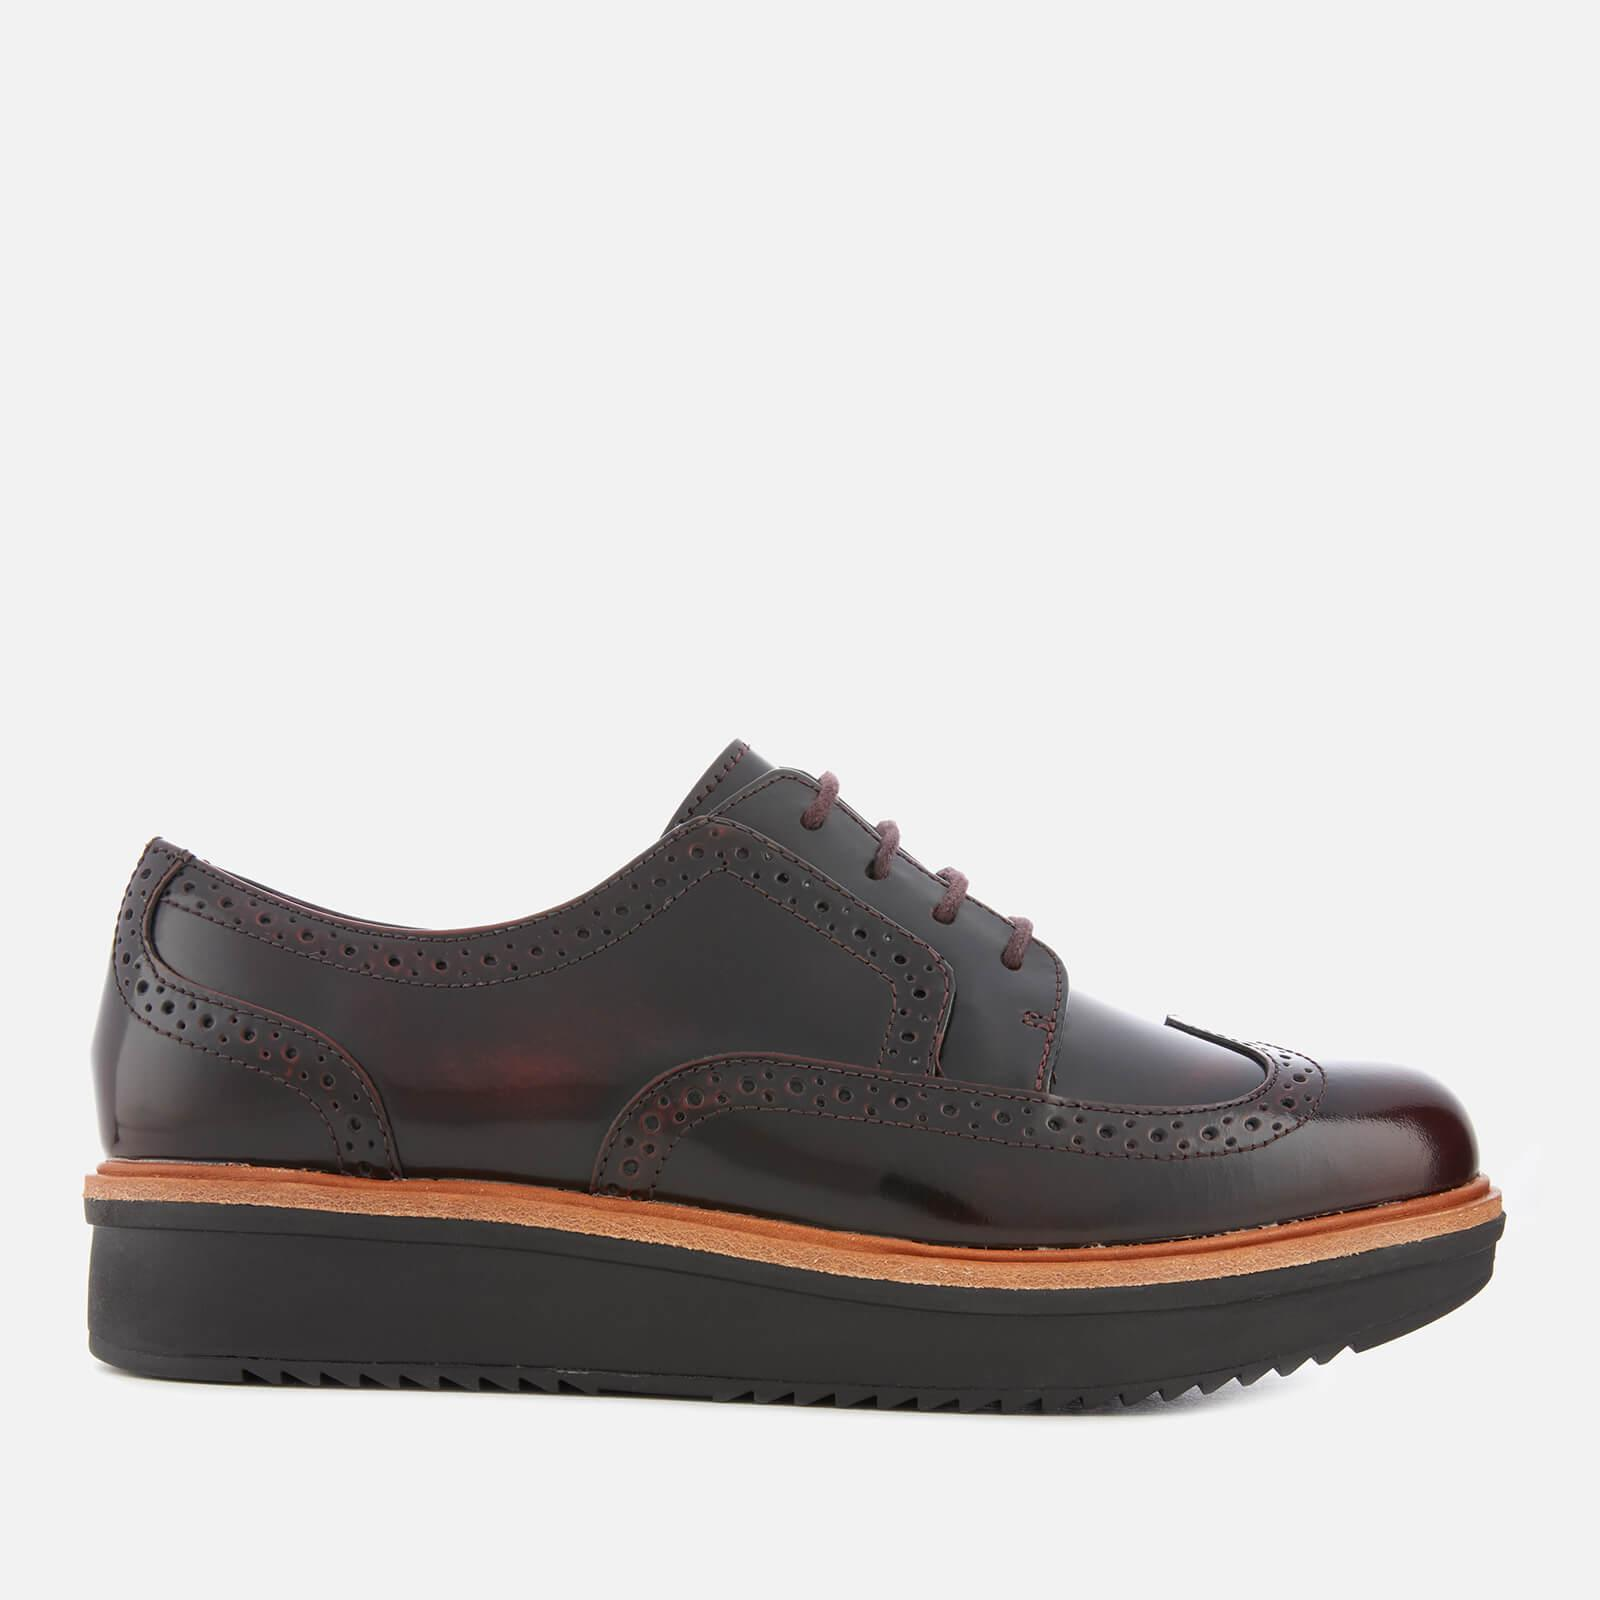 d5611c46817 Clarks. Women s Teadale Maira Leather Brogues